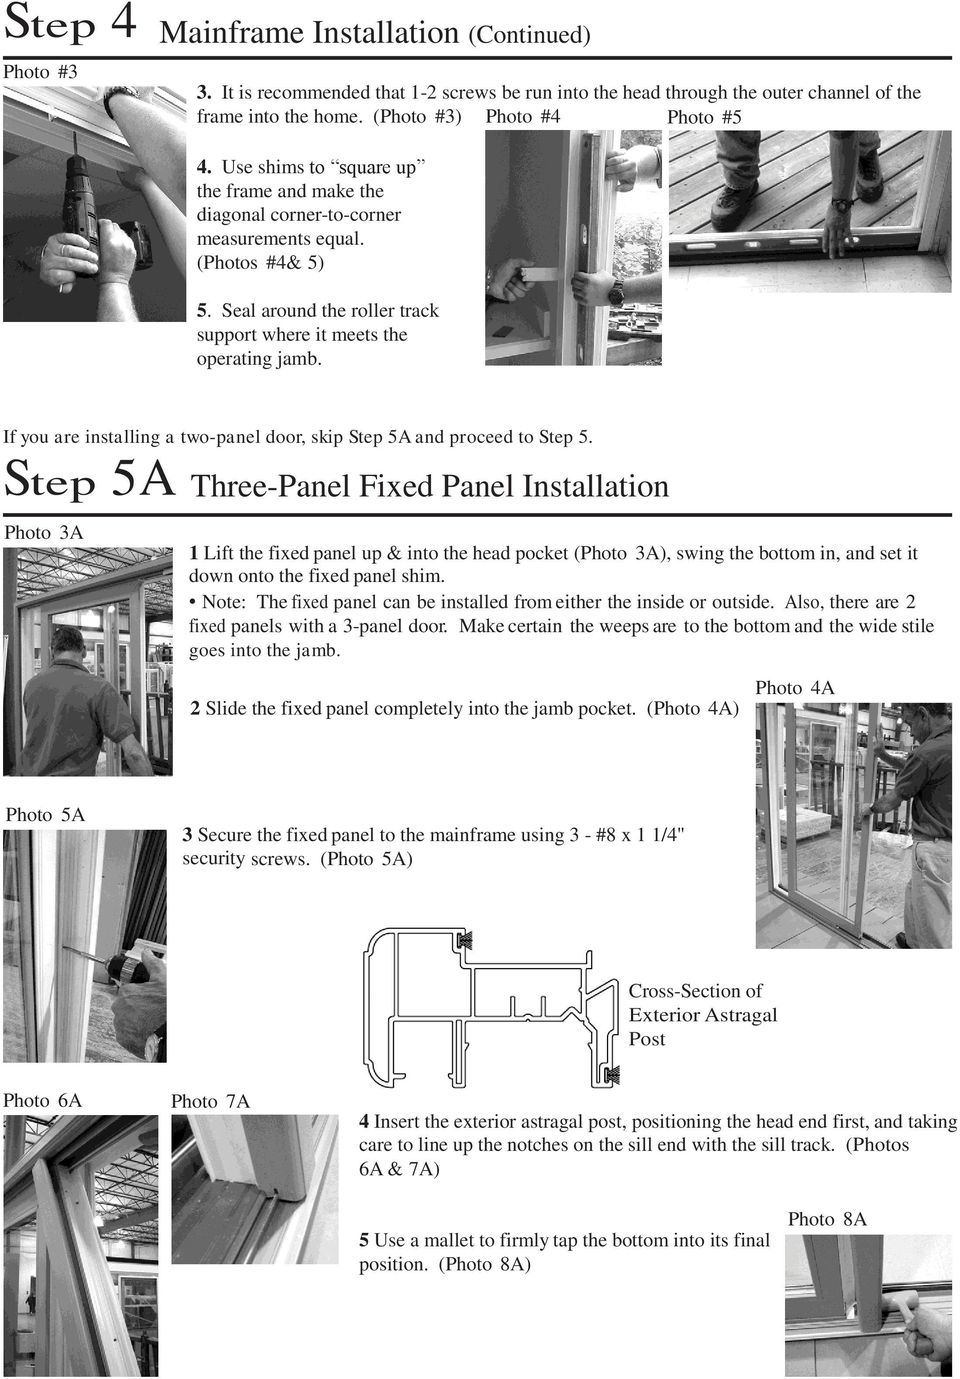 If you are installing a two-panel door, skip Step 5A and proceed to Step 5.